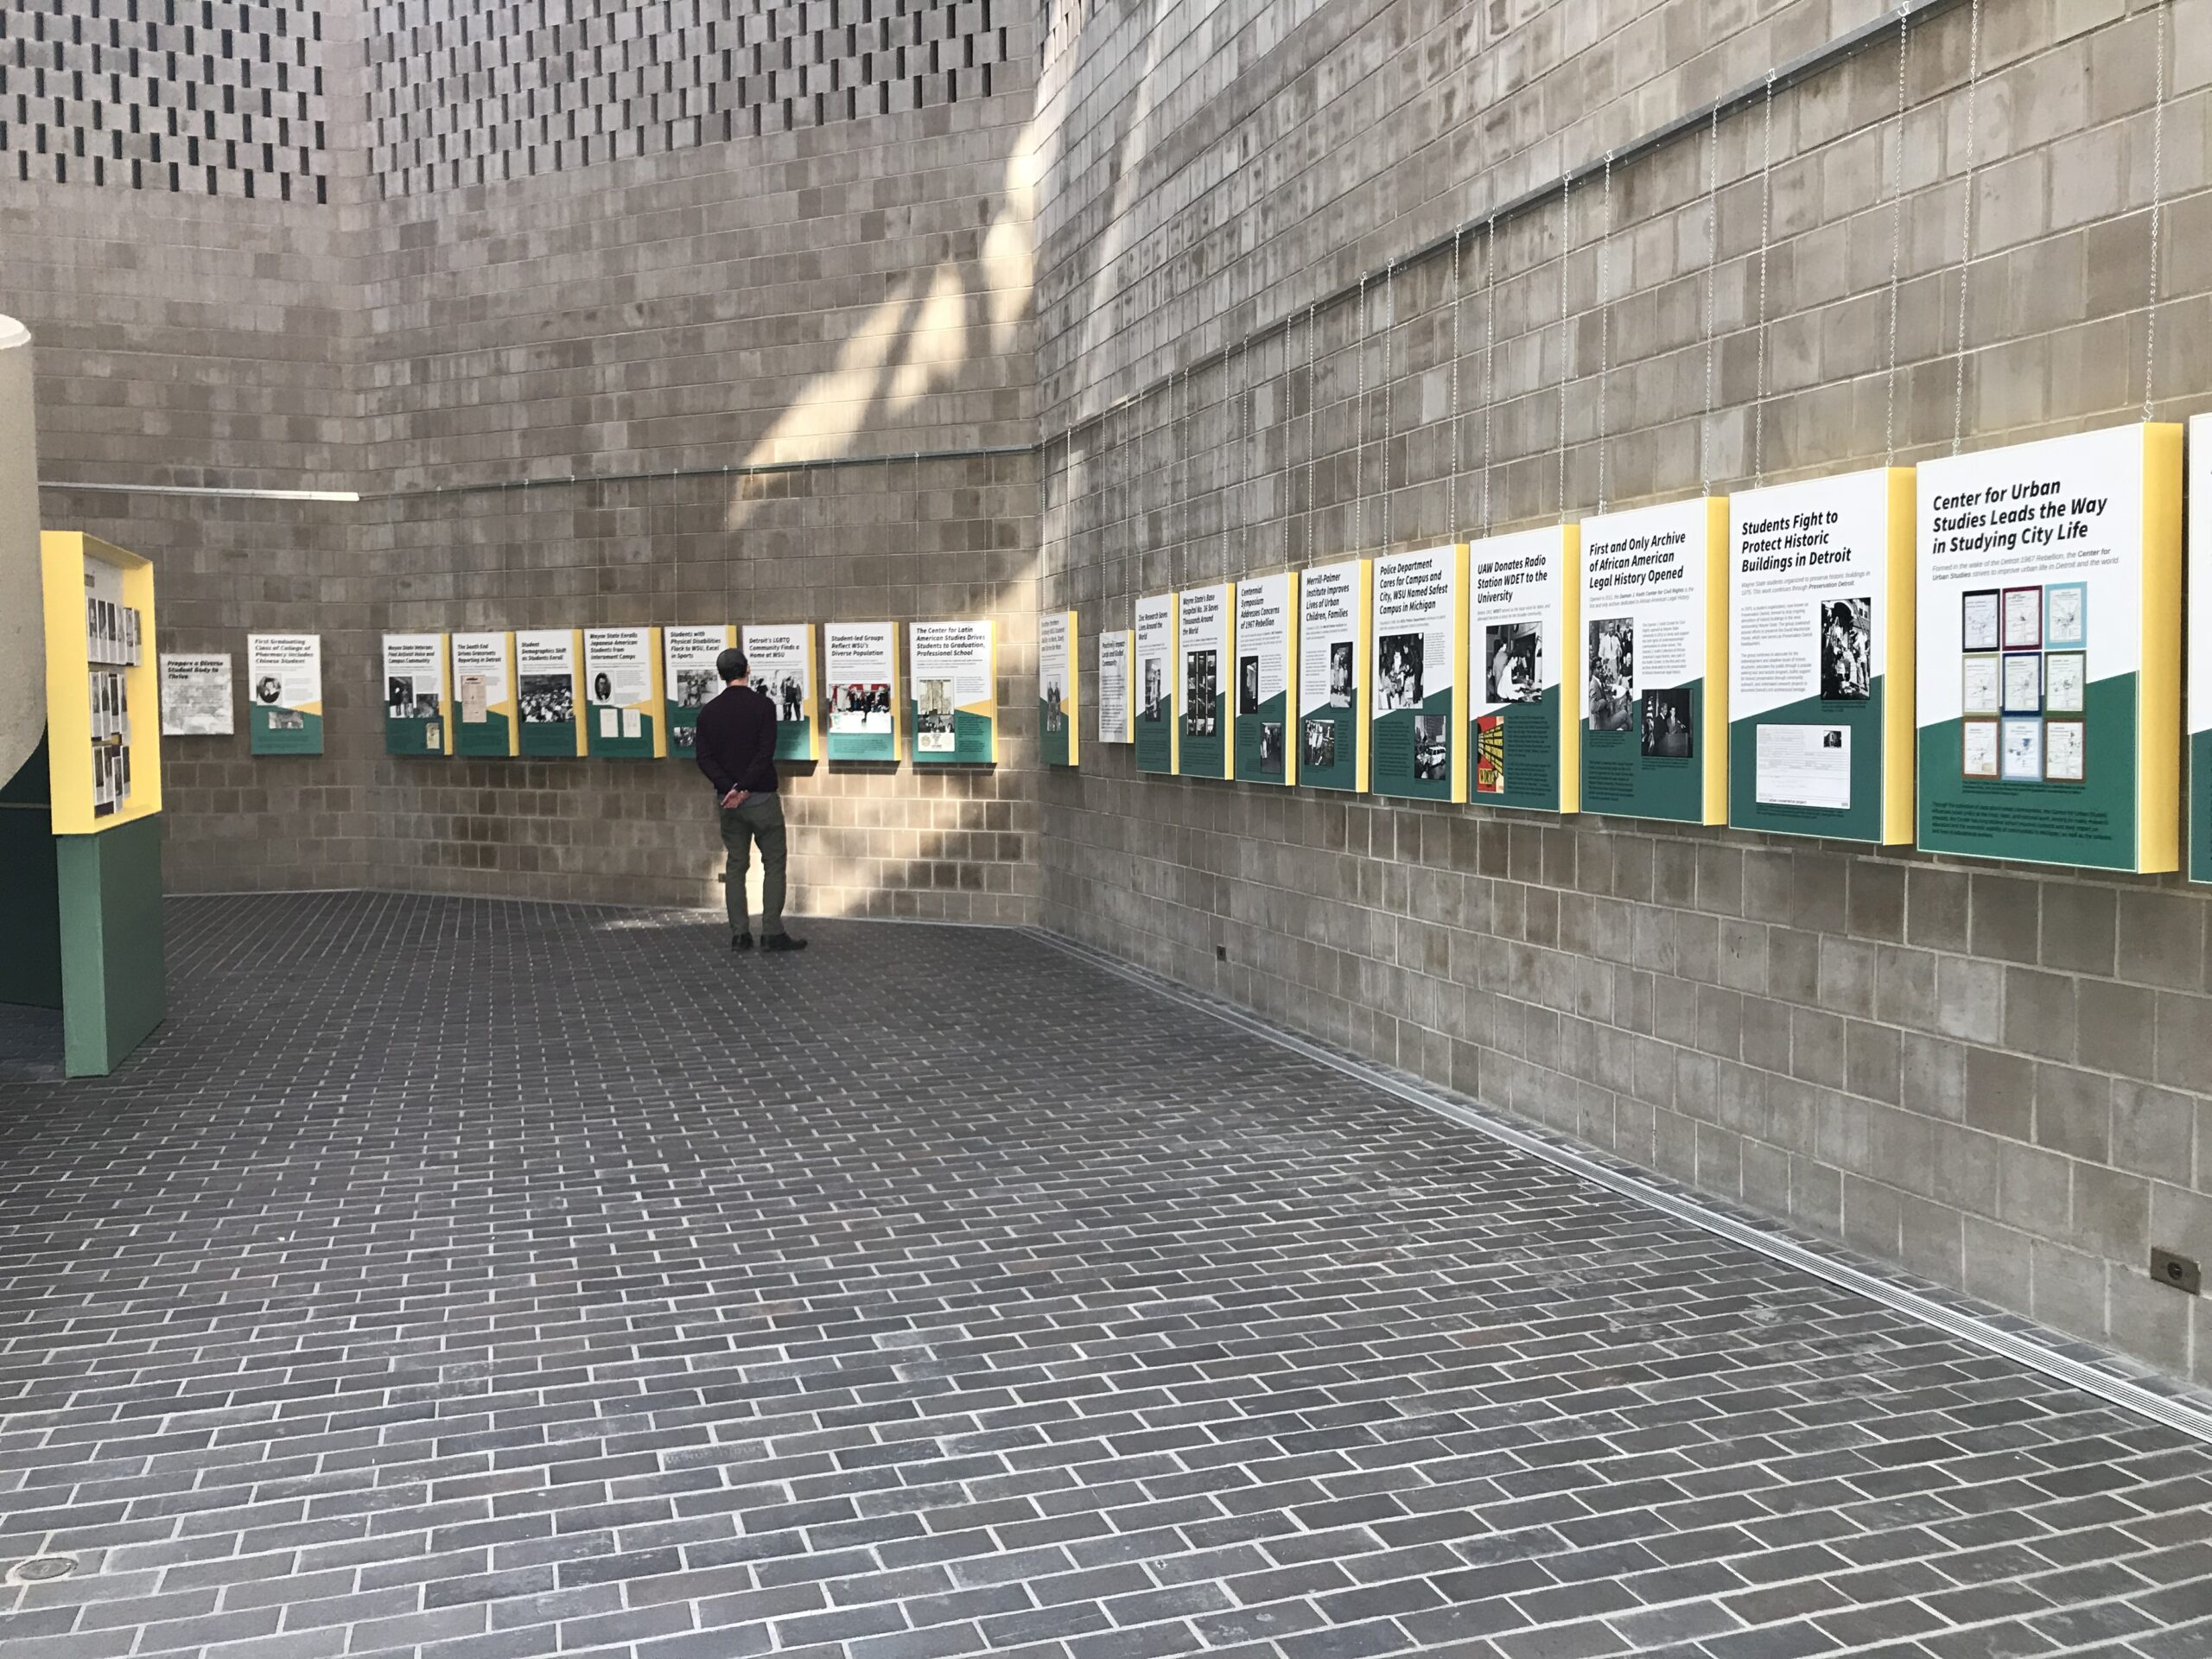 Hanging timeline highlighting important events throughout Wayne State University's 150 year history.